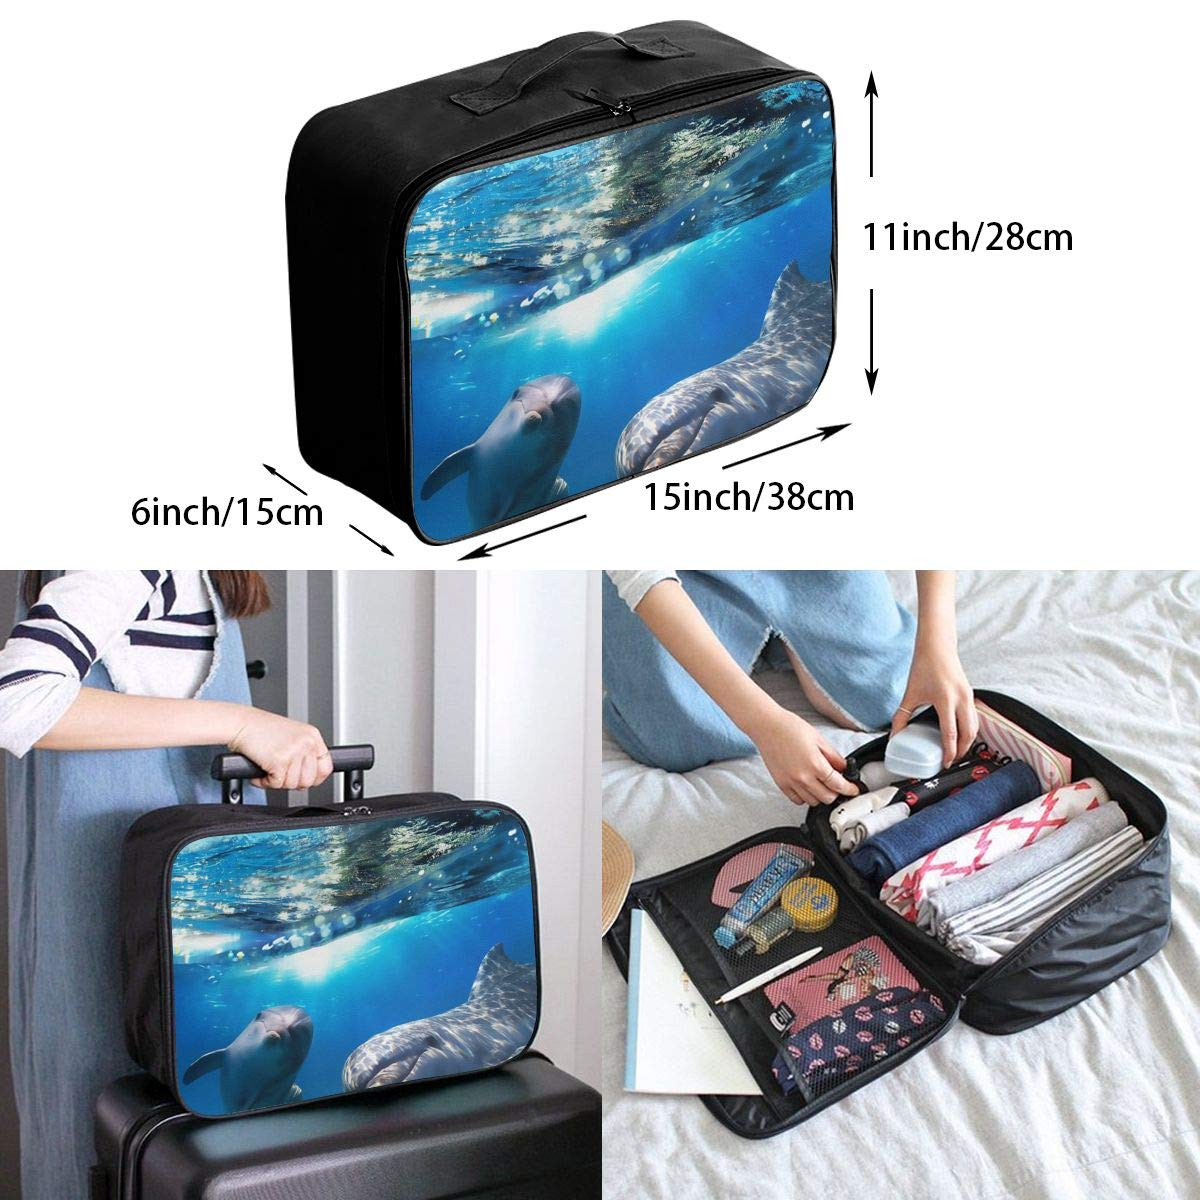 SSZW Cute Dolphin Travel Duffel Bag Waterproof Fashion Lightweight Large Capacity Portable Luggage Bag